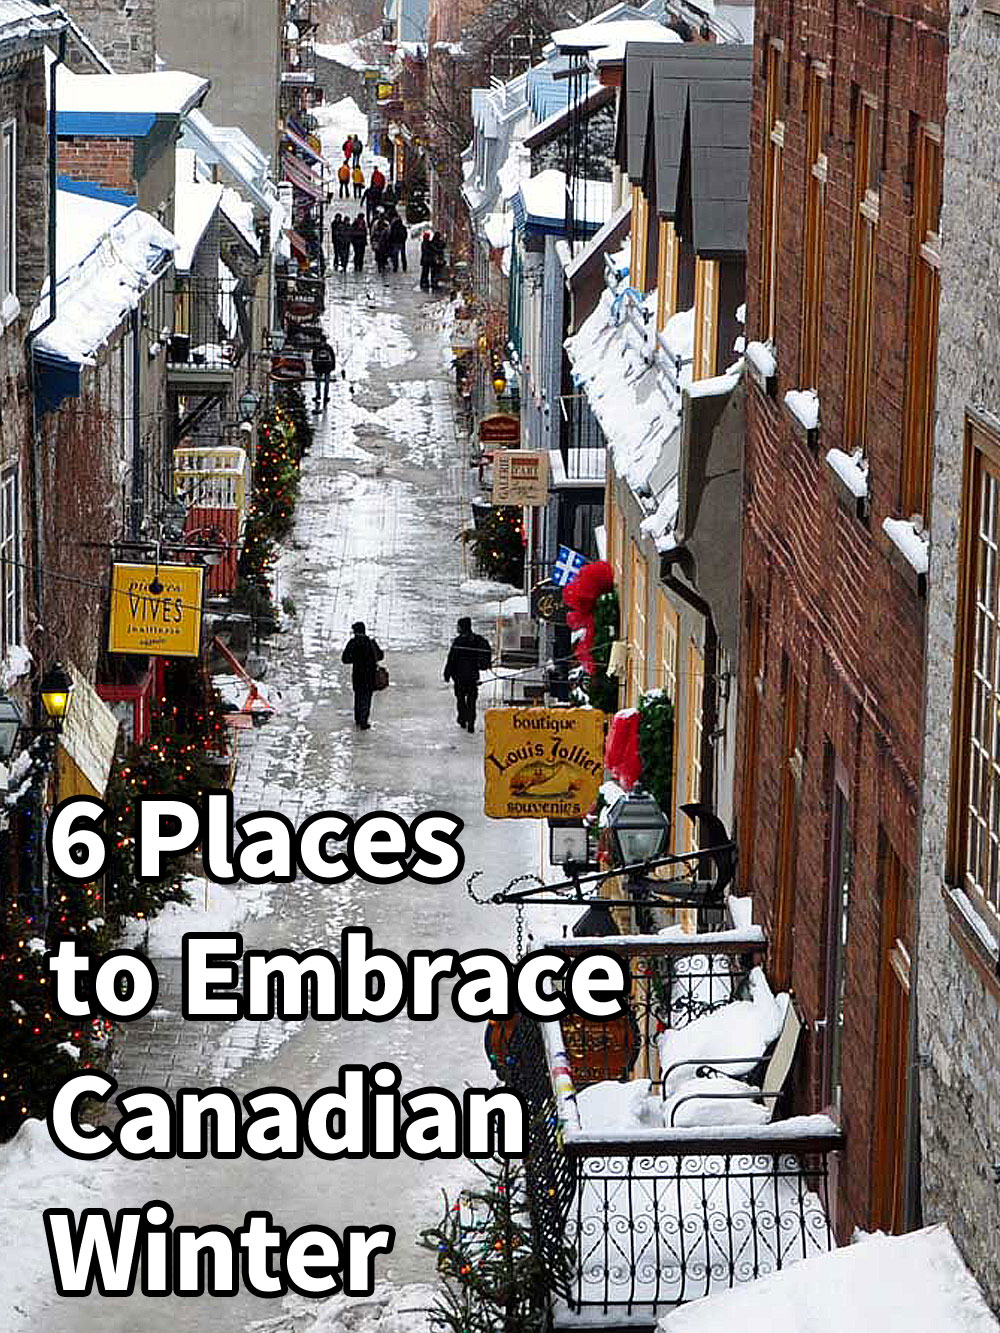 6 Places to Embrace Canadian Winter